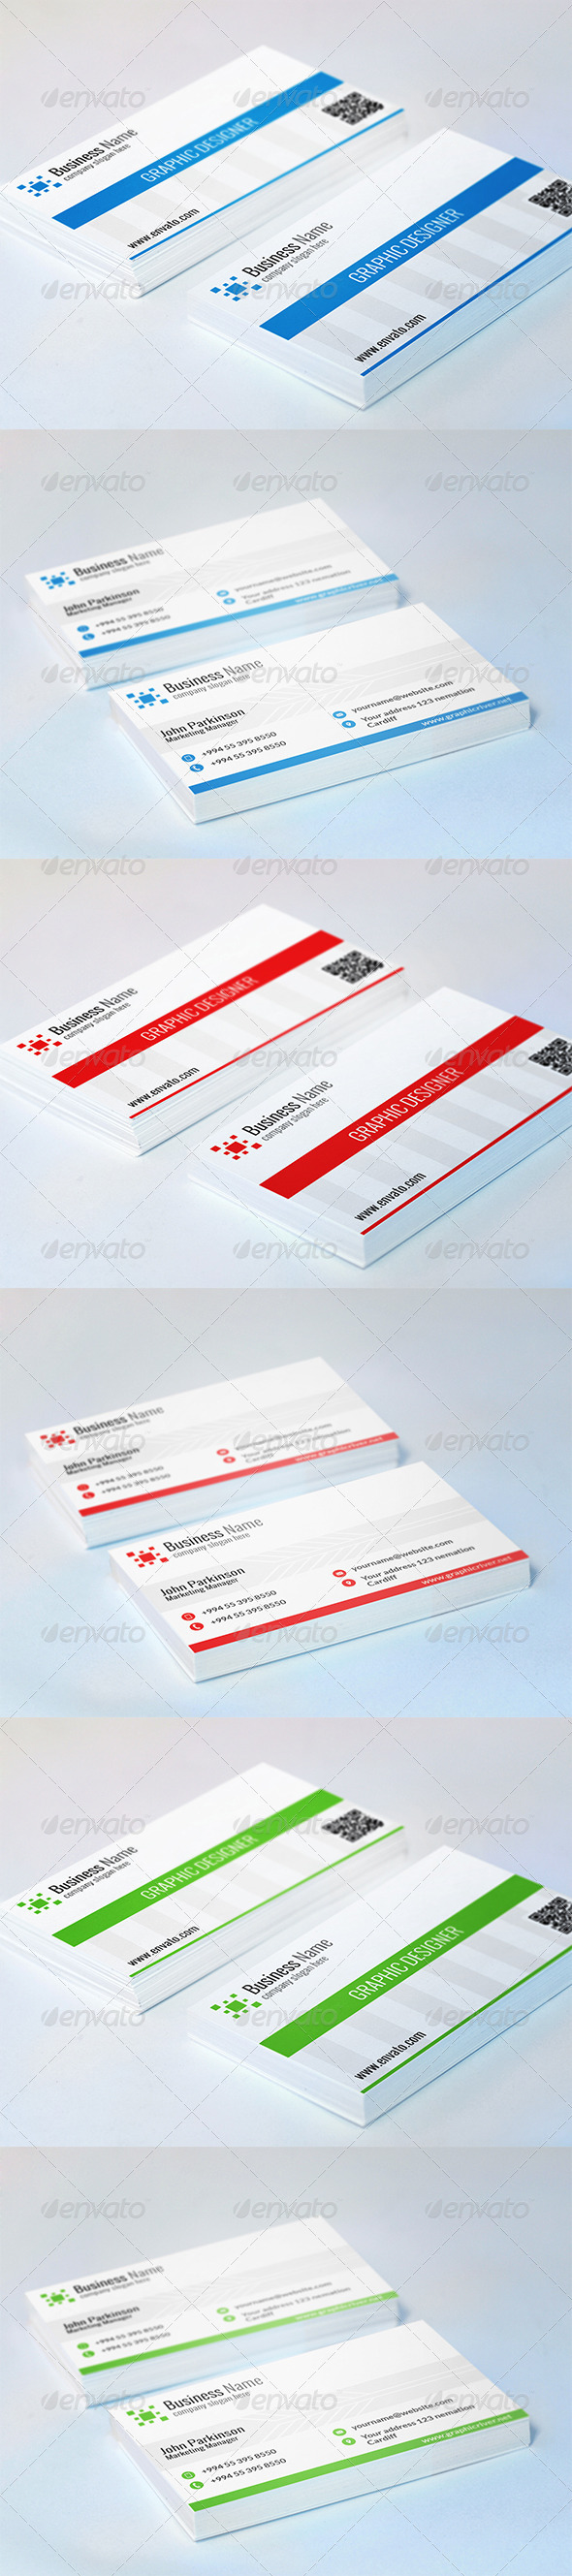 Corporate Business Card N-003